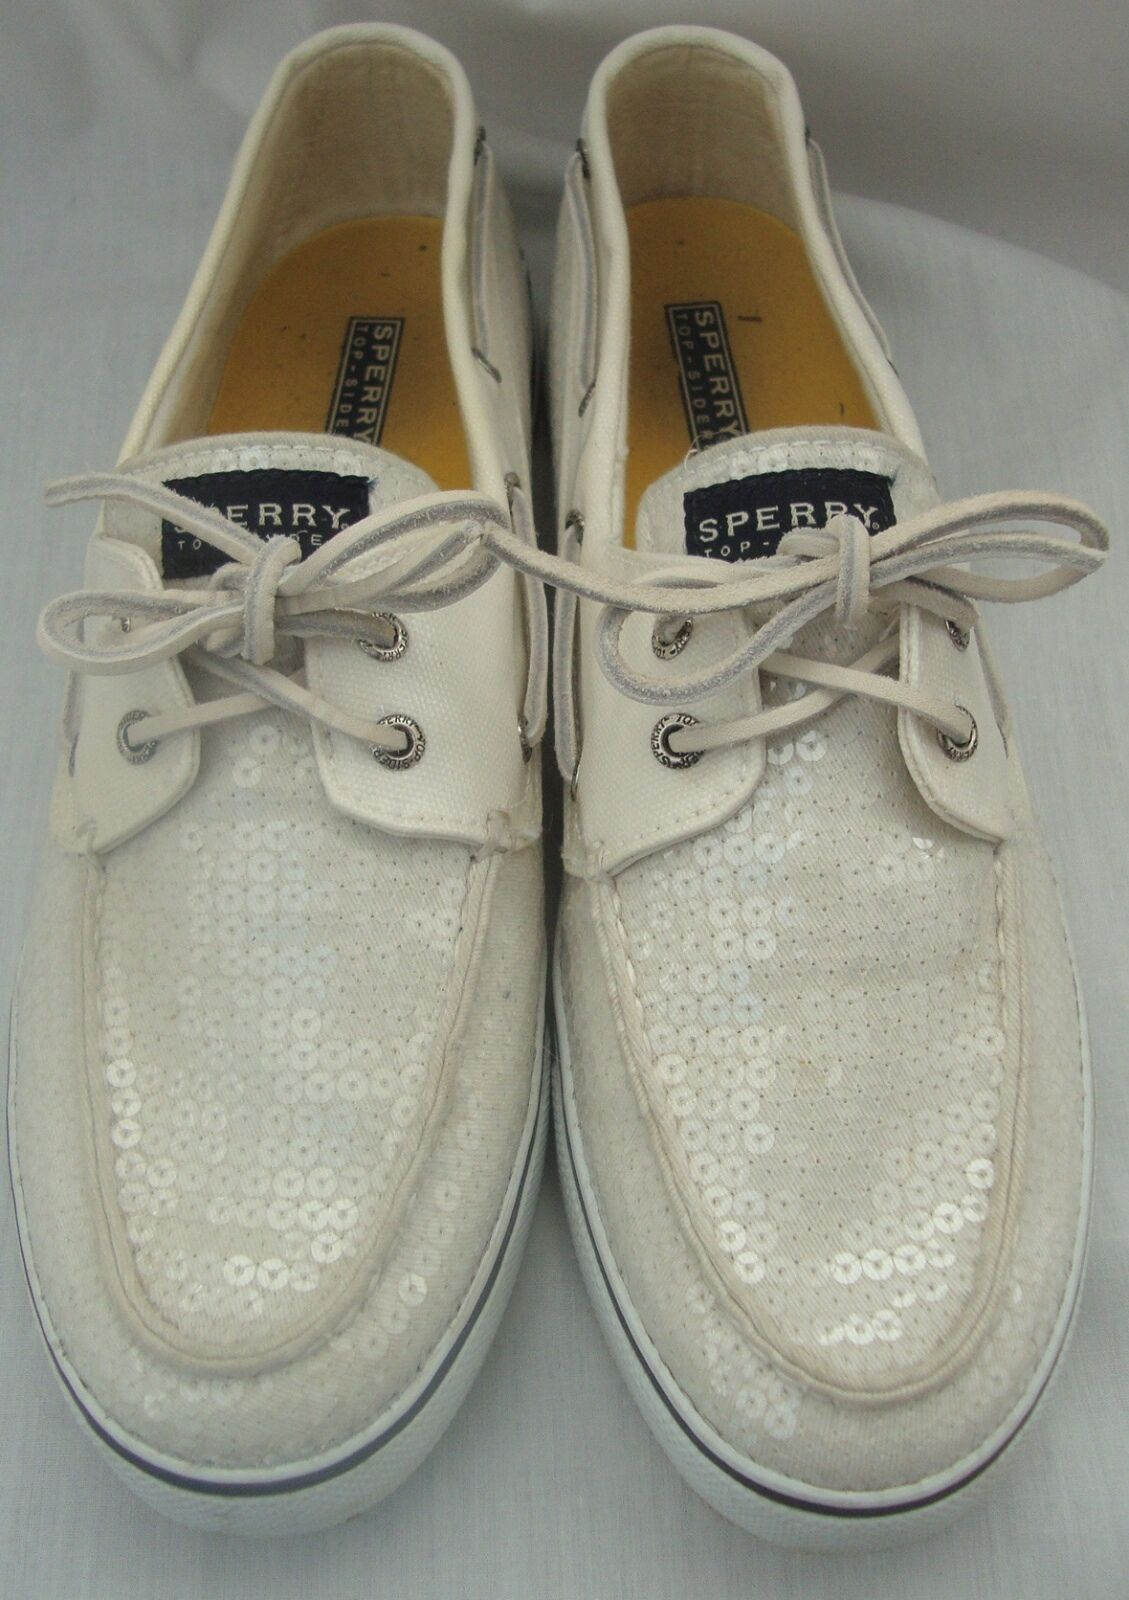 SPERRY BAHAMA WHITE CANVAS BOAT SHOES TOP SIDER COVERED IN CLEAR SEQUINS SZ 12 M